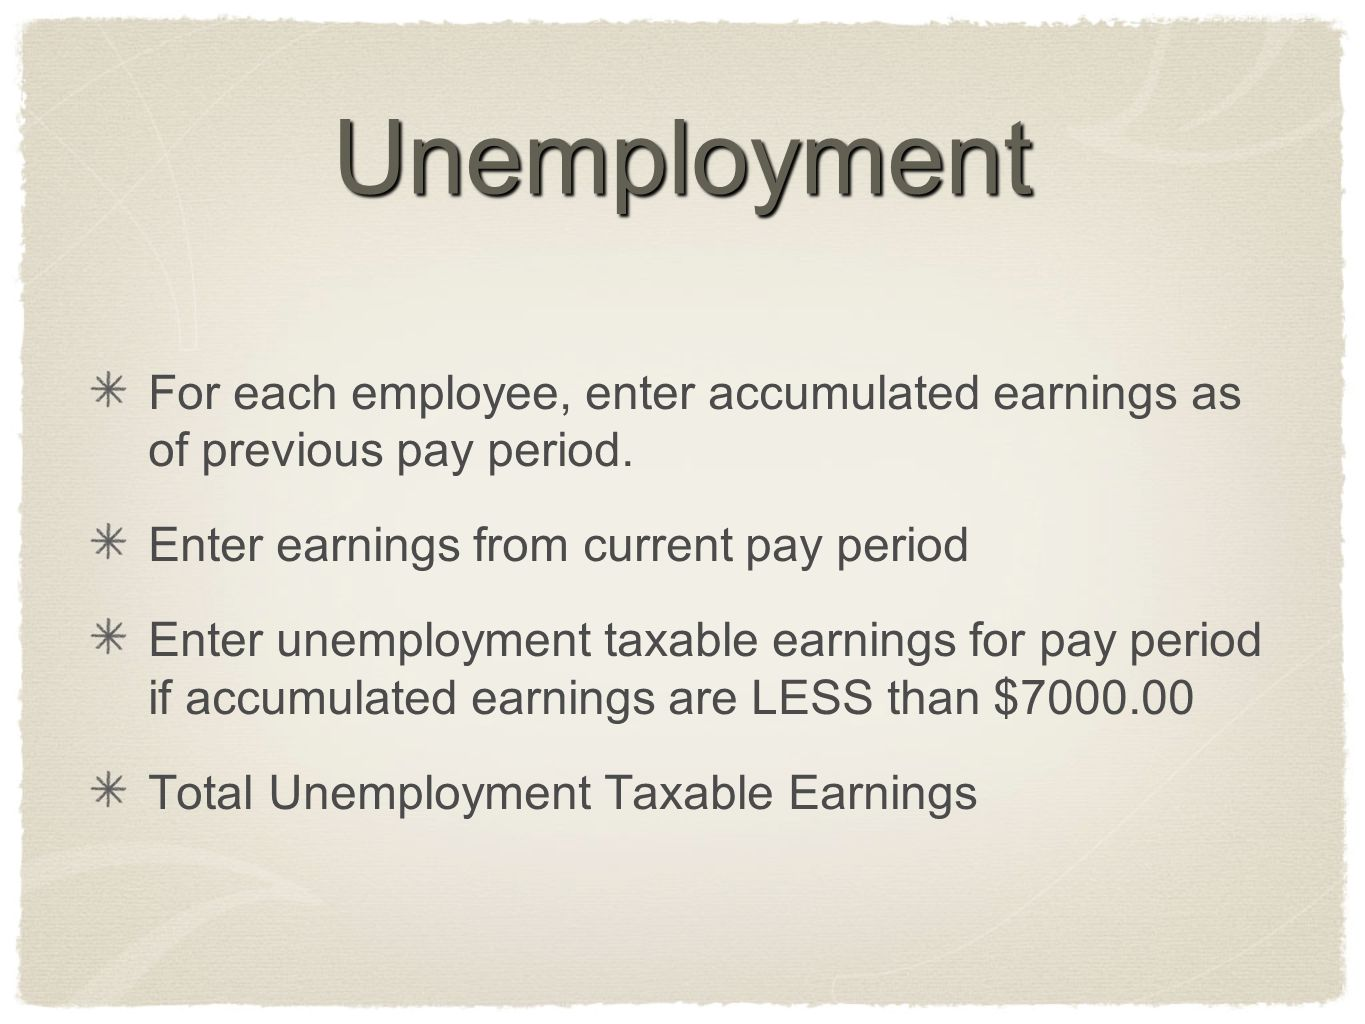 Unemployment For each employee, enter accumulated earnings as of previous pay period. Enter earnings from current pay period.